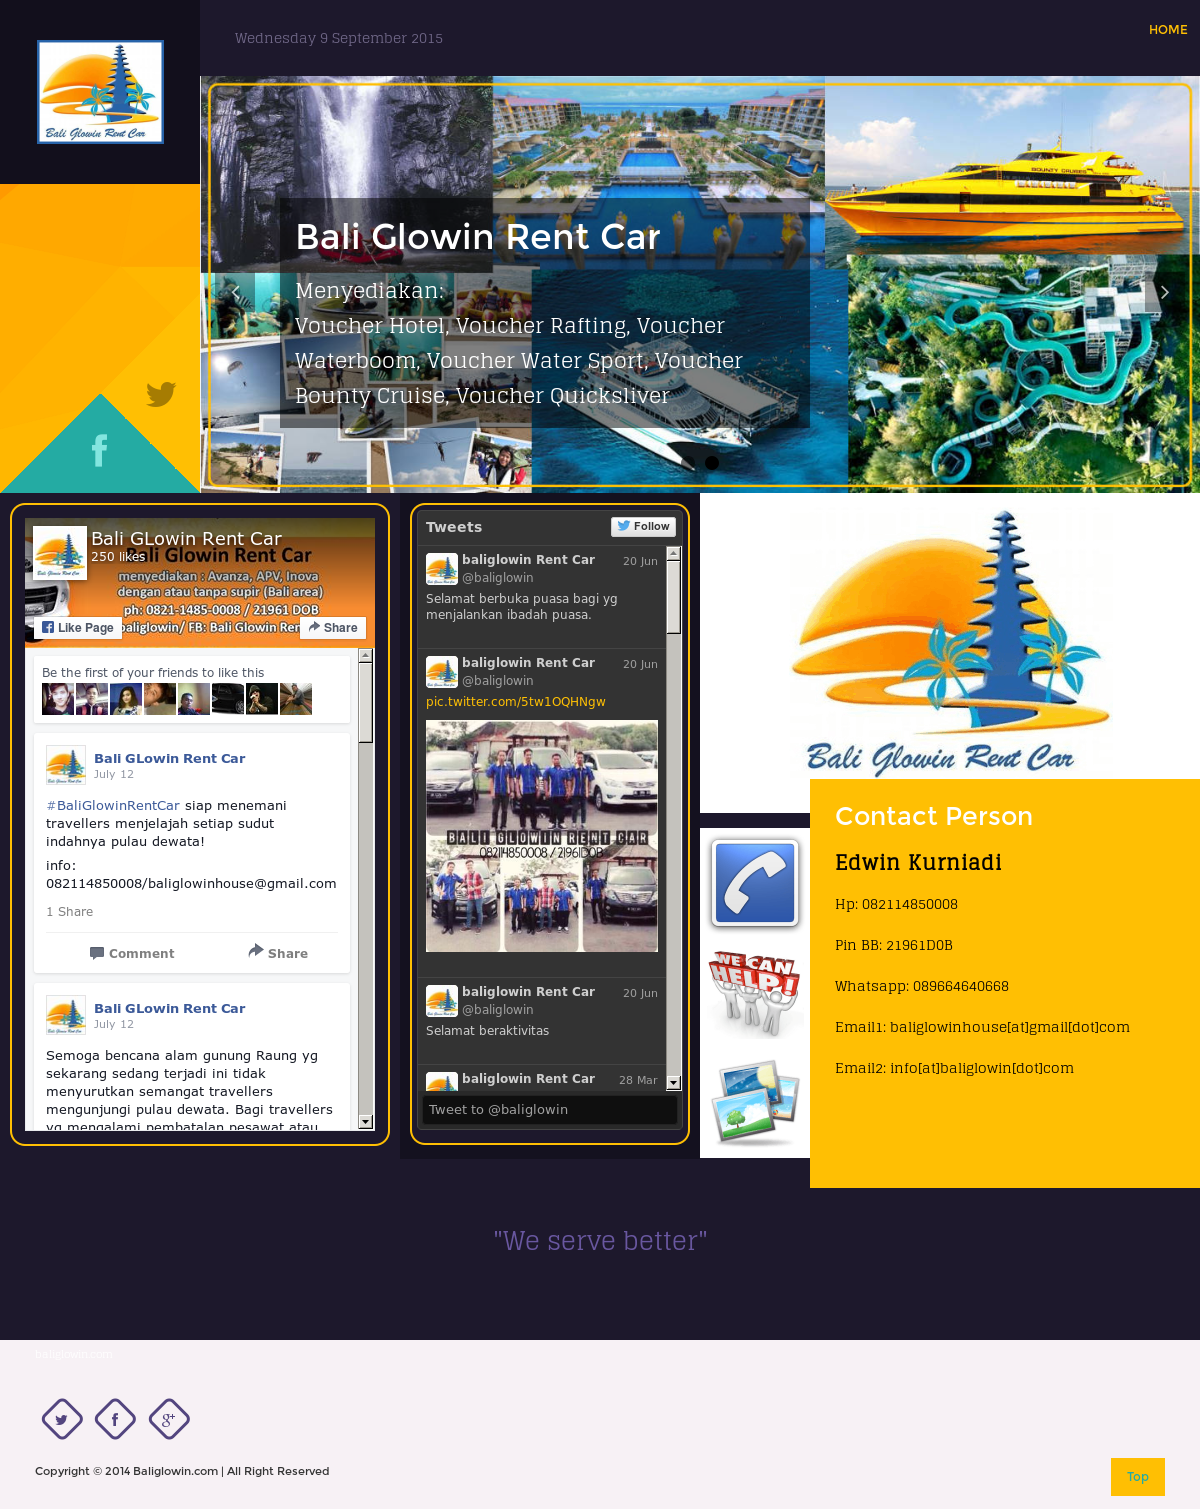 Bali Glowin Rent Car Competitors Revenue And Employees Owler Voucher Waterboom Company Profile